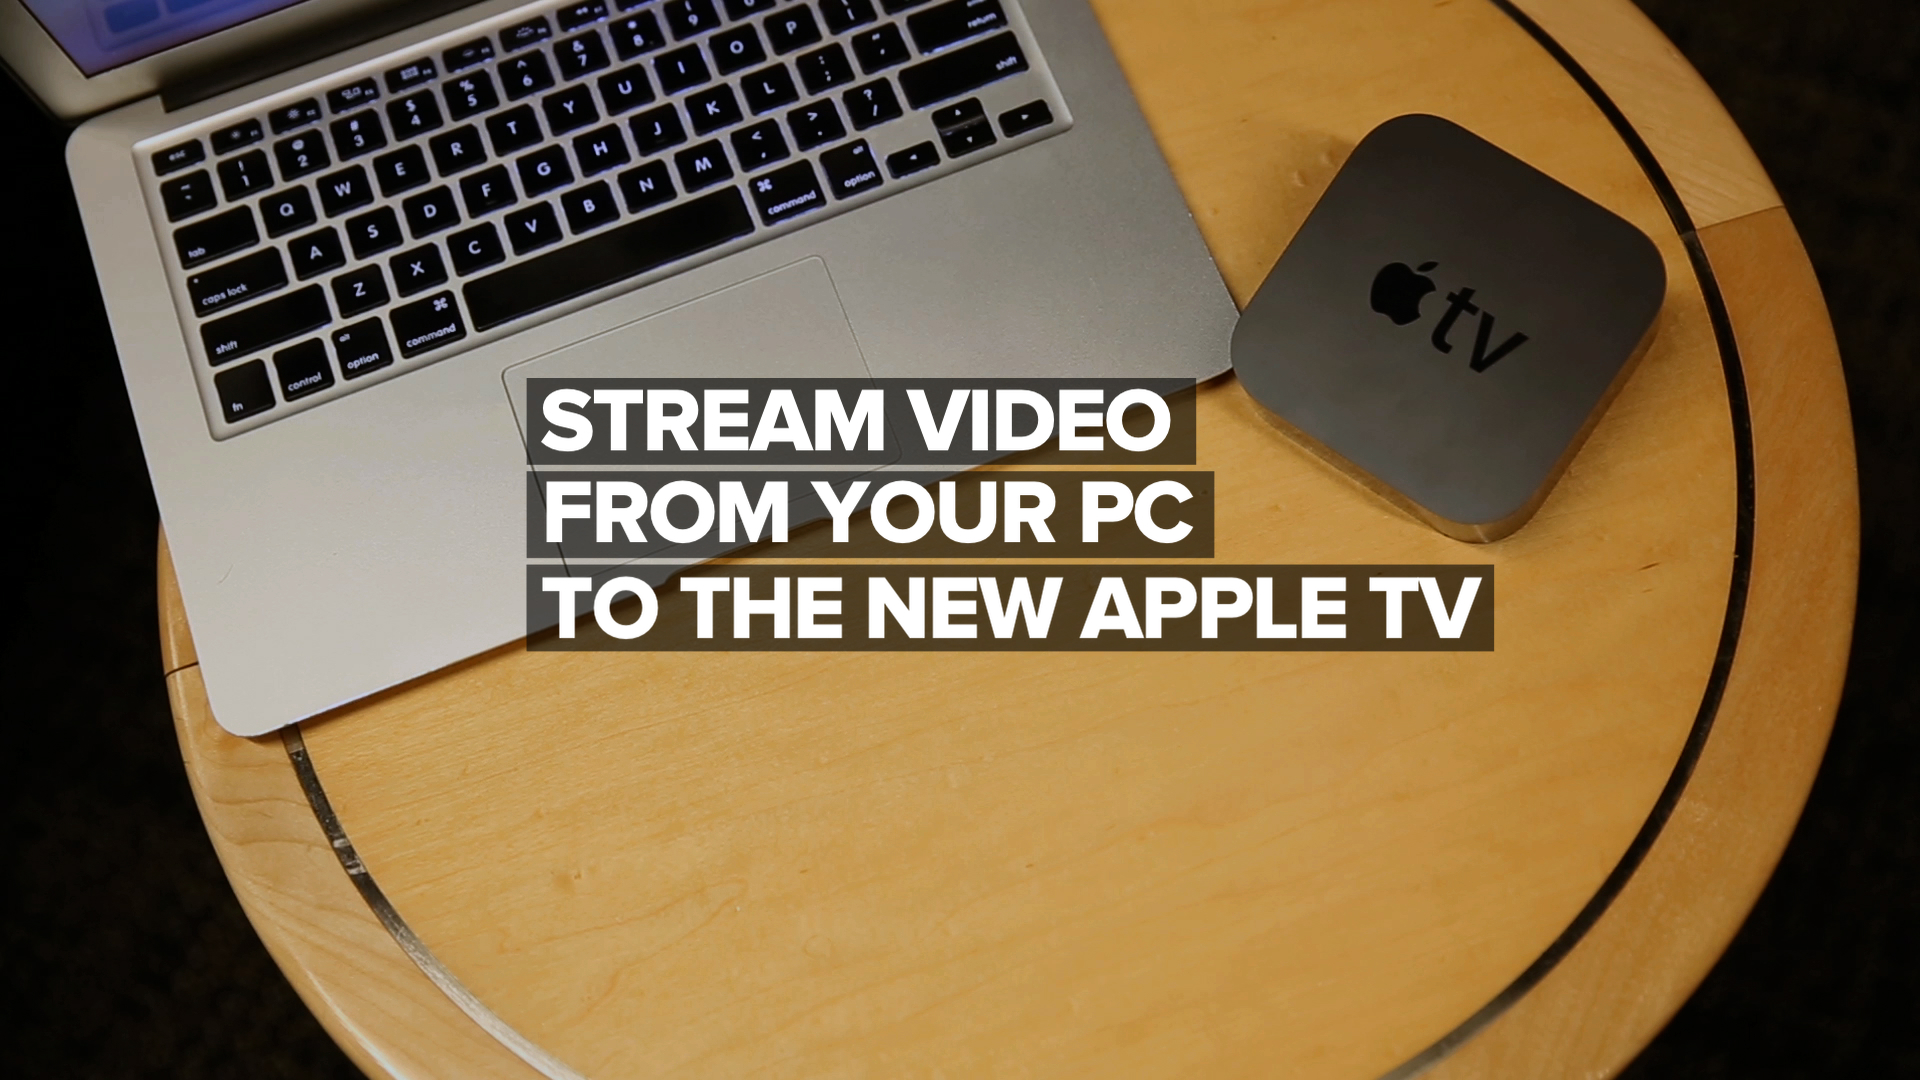 Video: Stream video from your PC to the new Apple TV